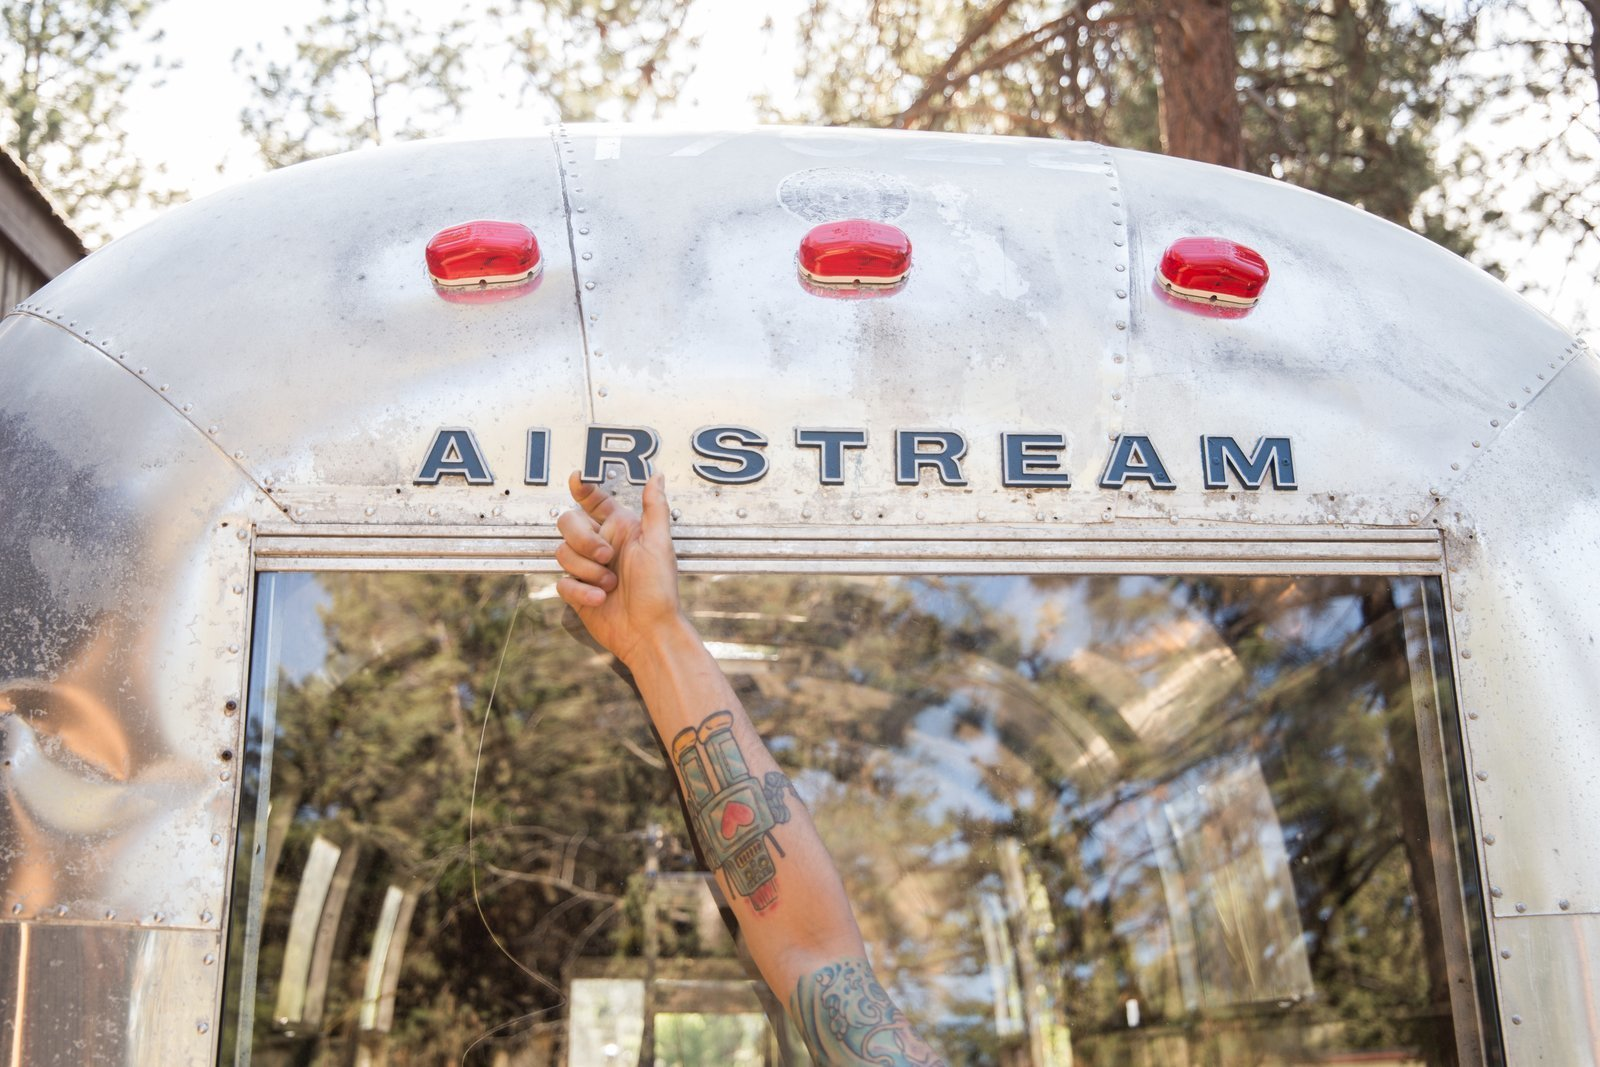 Photo 2 of 25 in See How an Oregon Couple Renovated Their 1966 Airstream